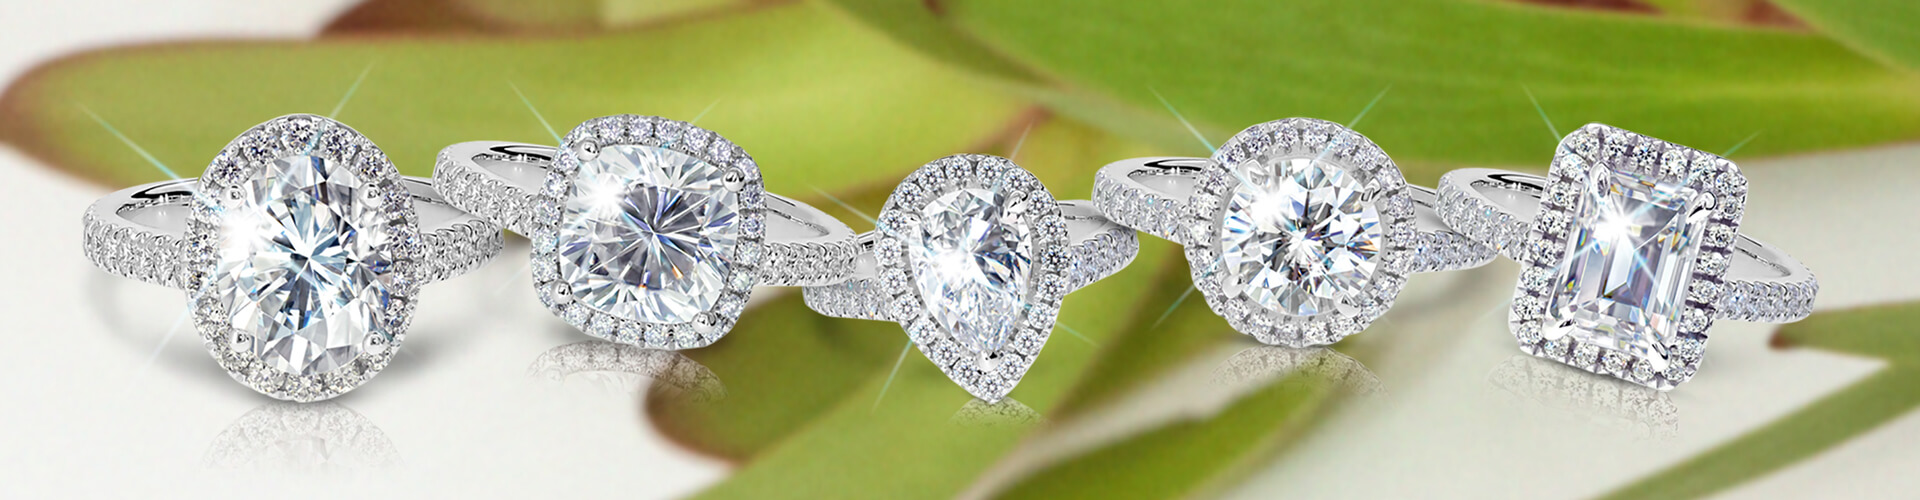 Moissanite Shapes and SIzes